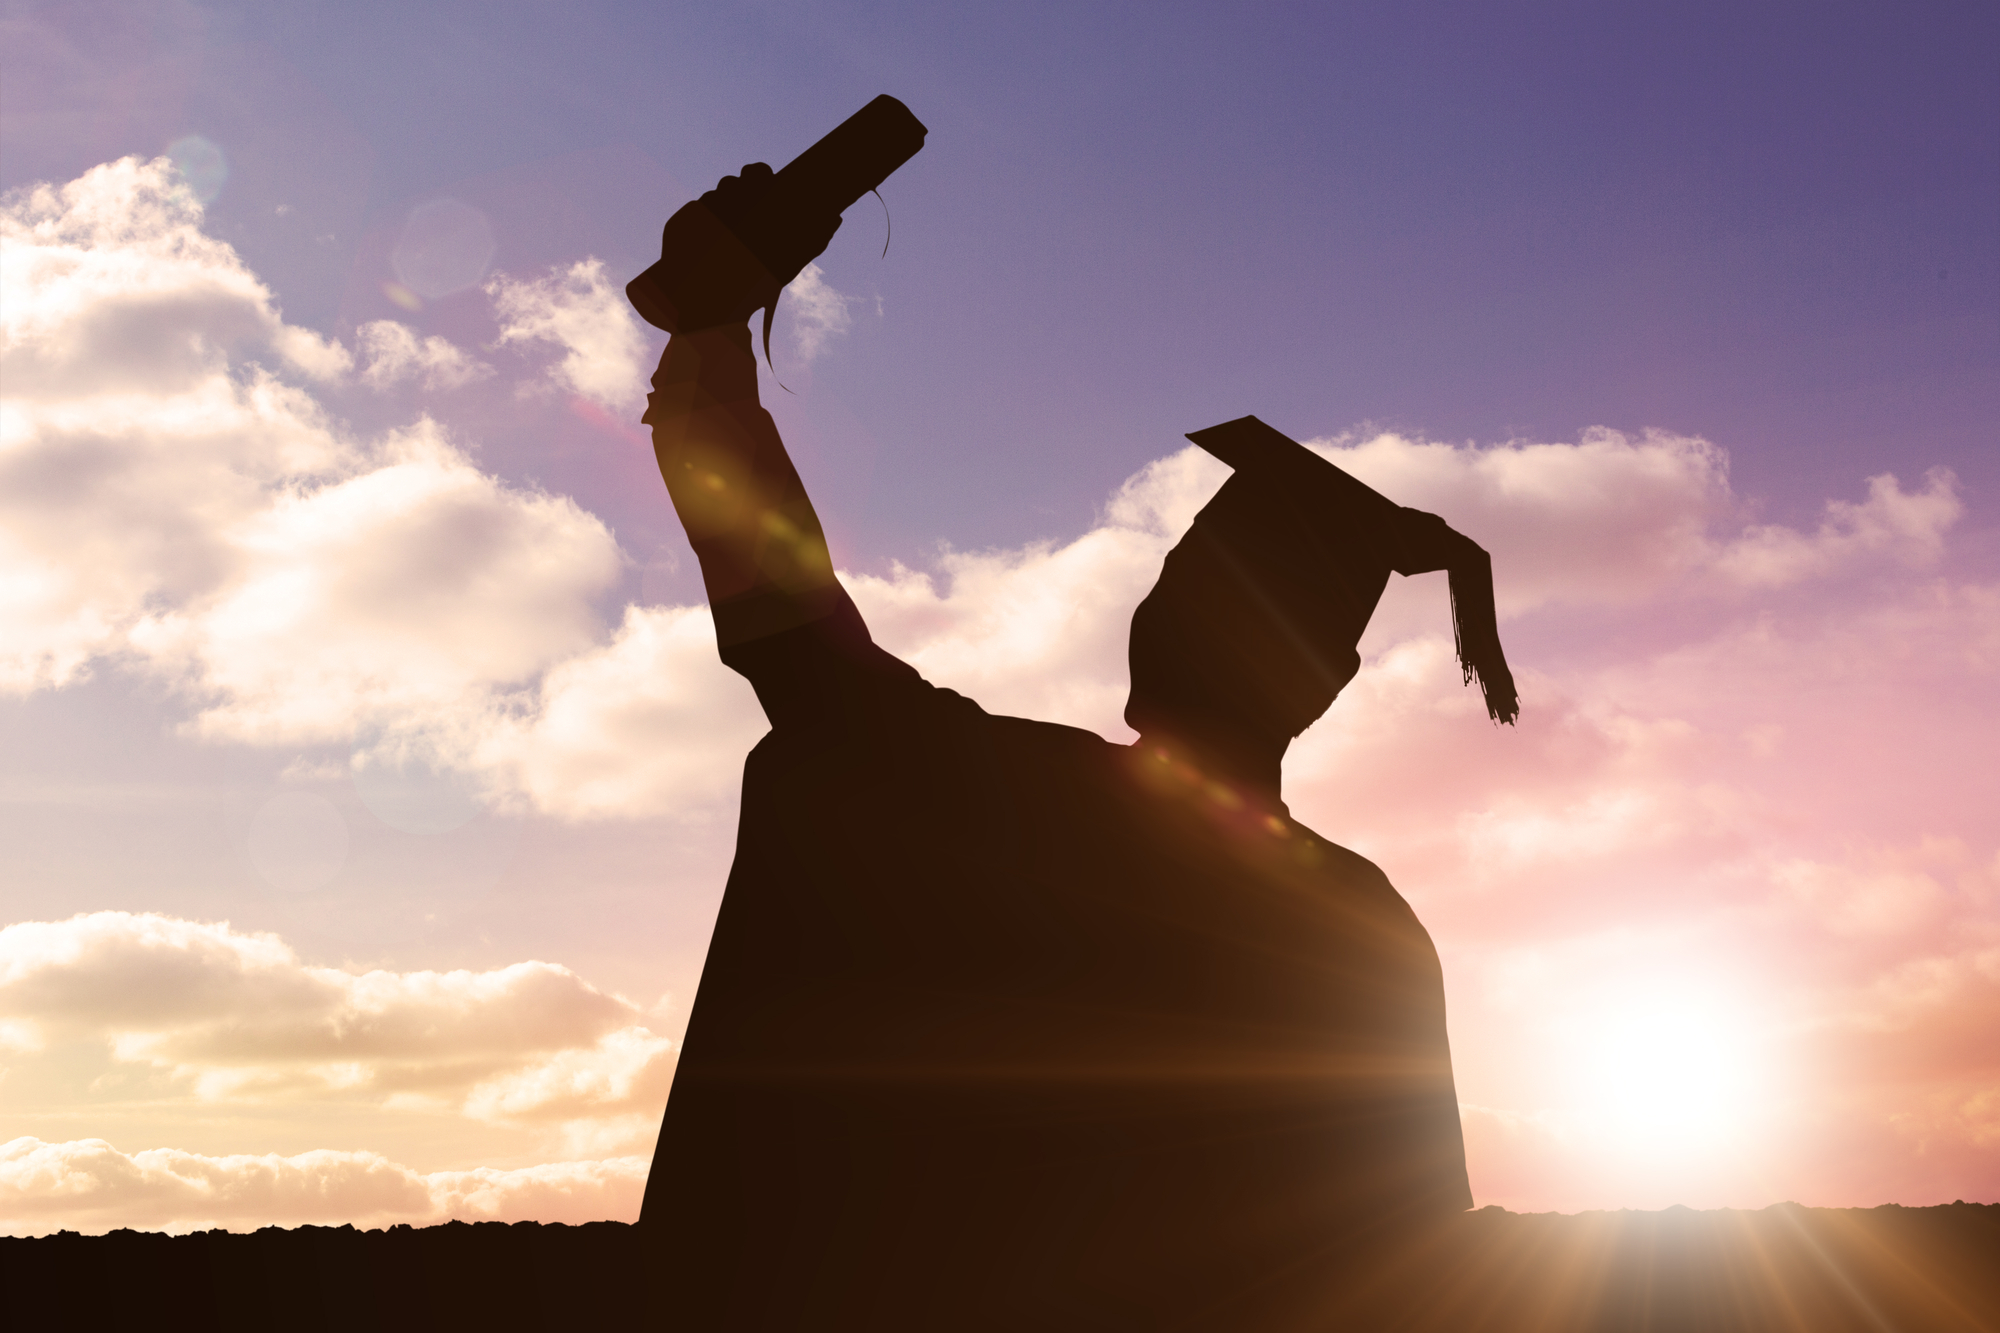 The sunset casts a silhouette of a college student wearing a cap and gown, raising their diploma into the air.